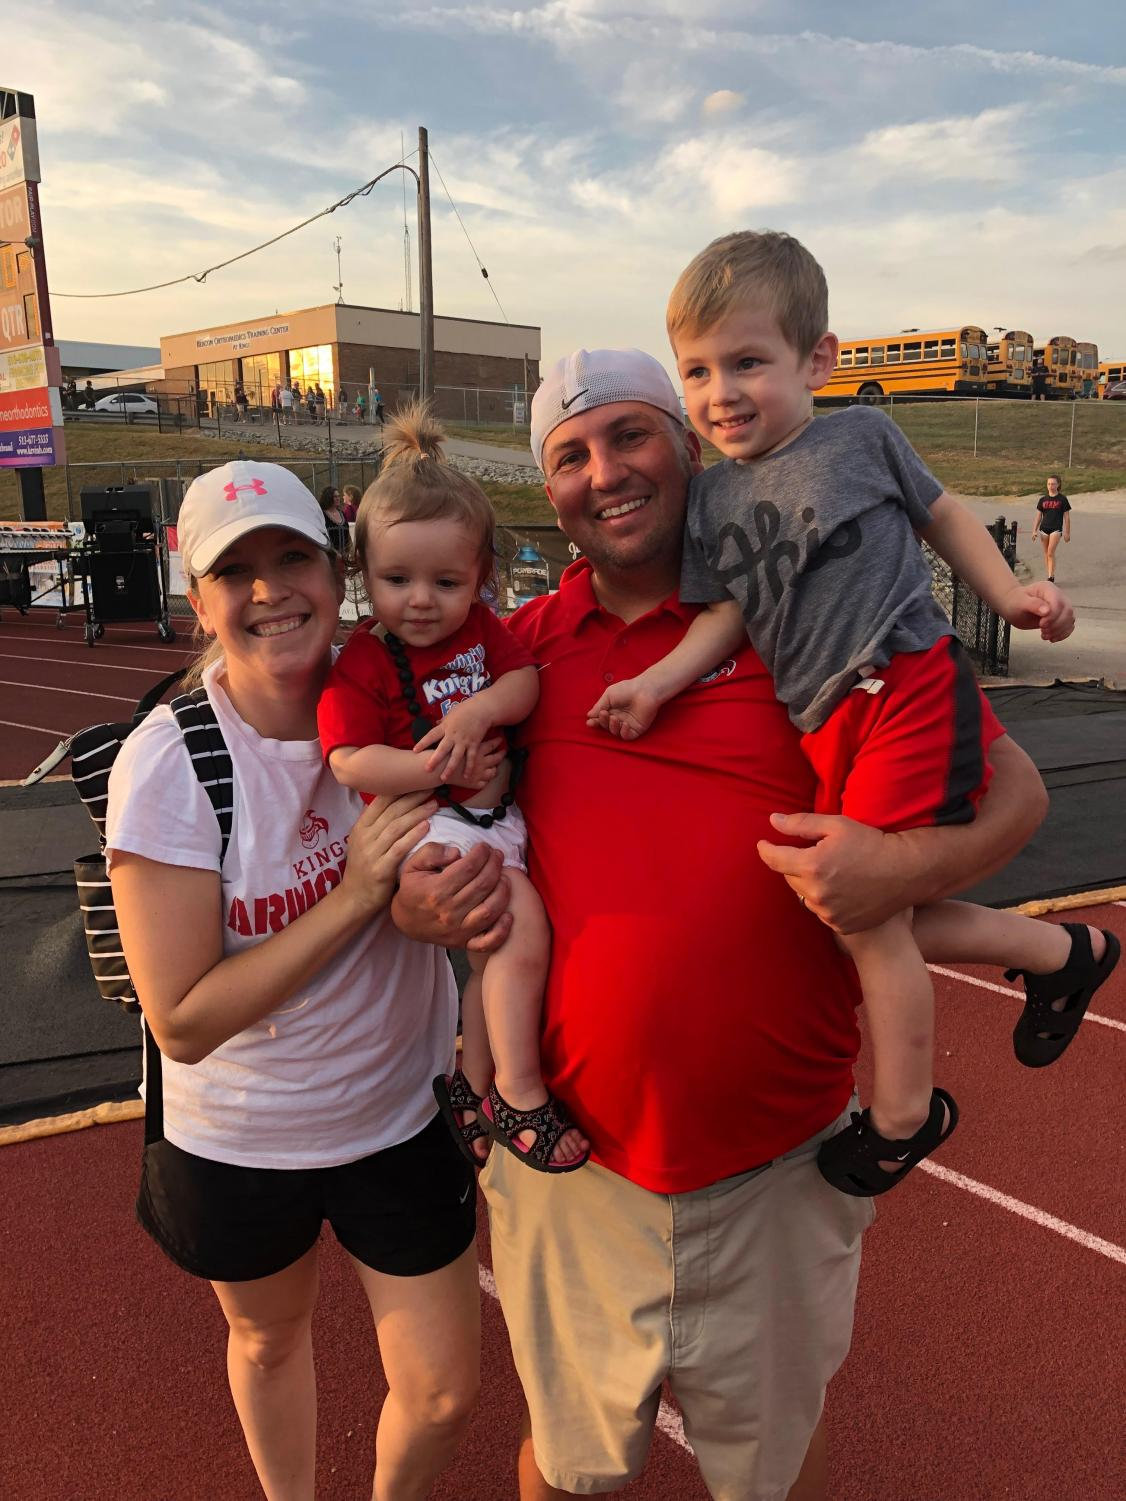 Coach Andy Endress with his wife and two kids